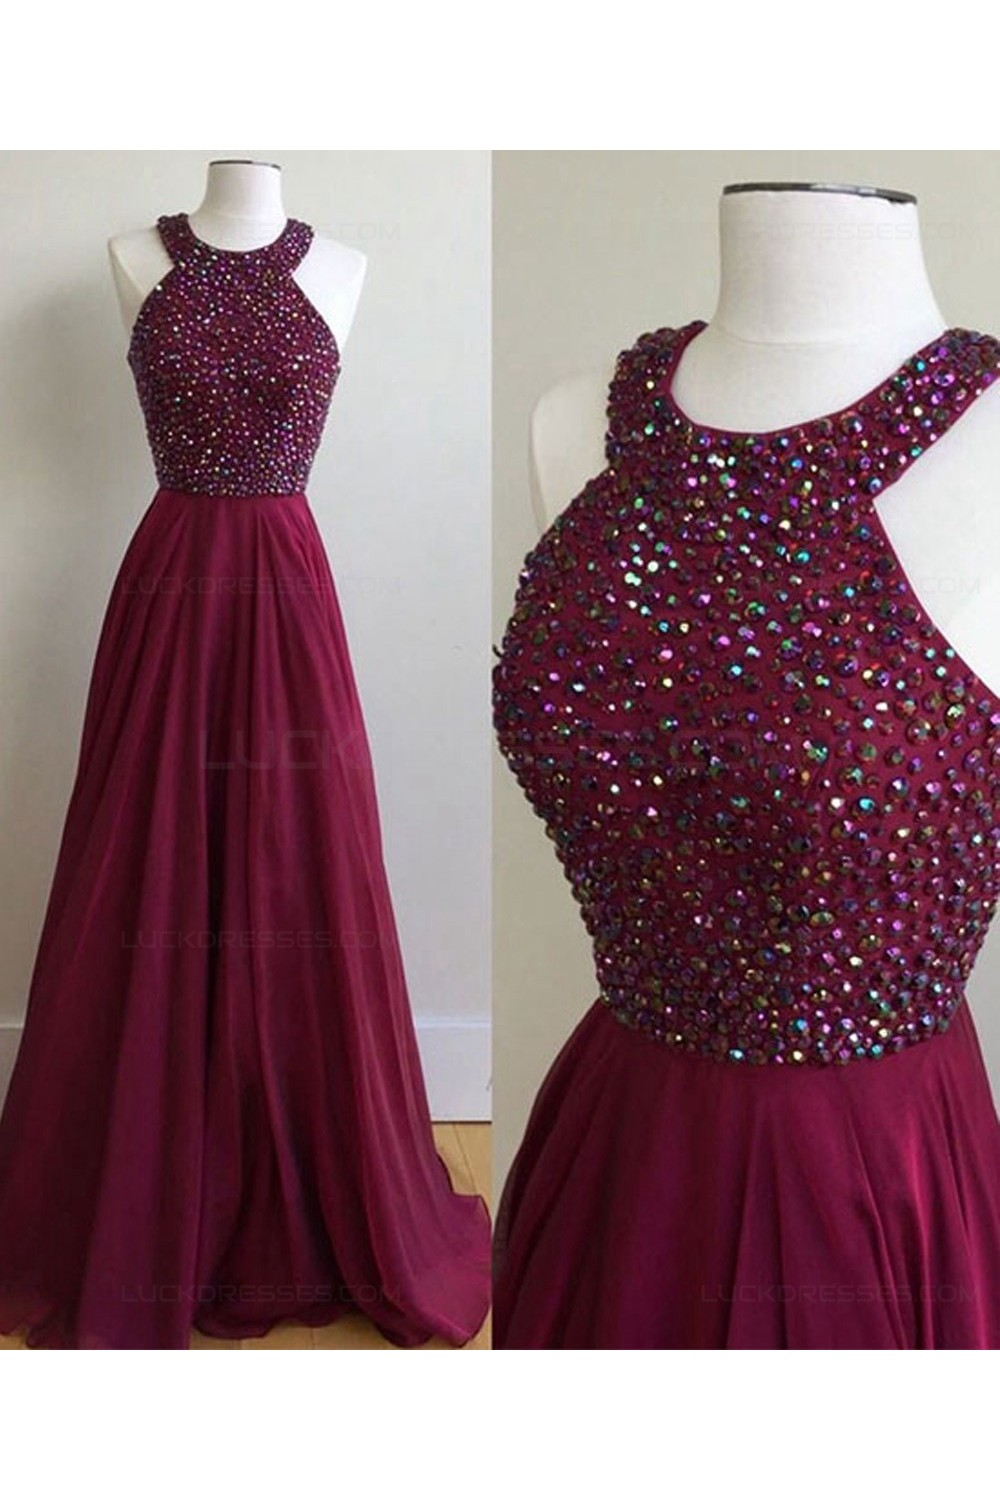 ALine Burgundy Beaded Chiffon Prom Dresses Party Evening